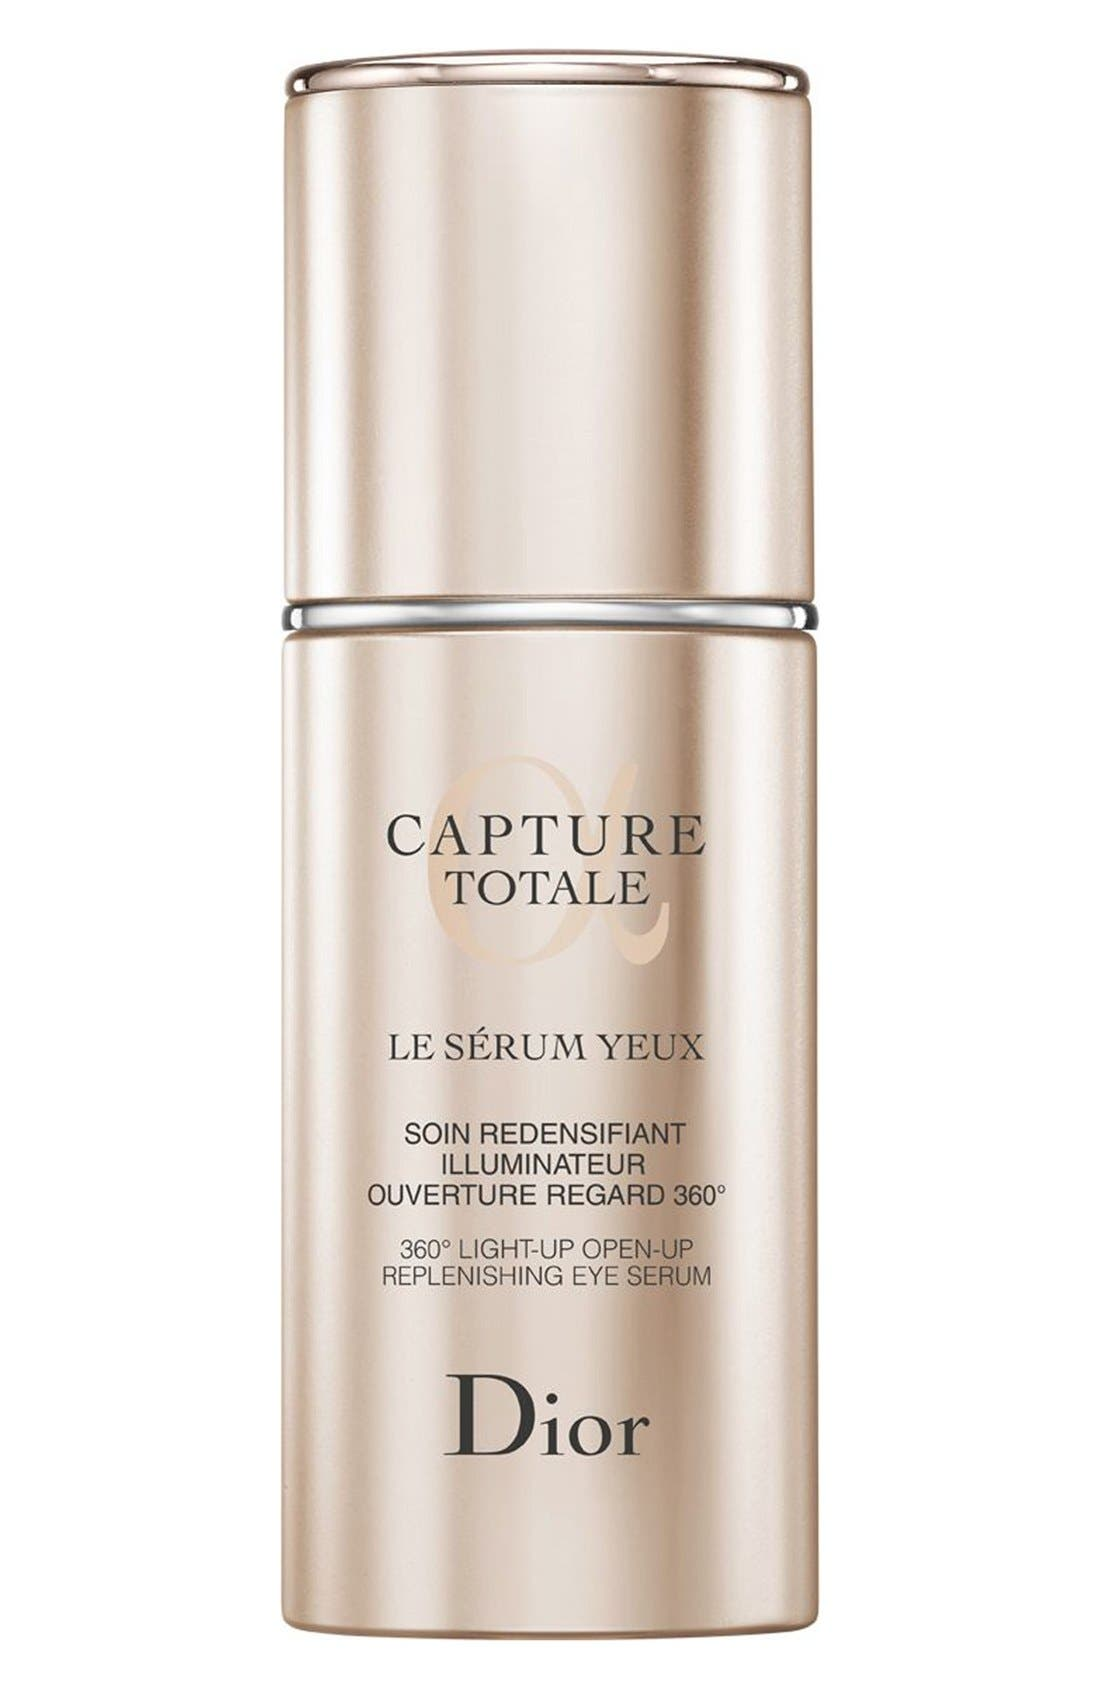 Capture Totale 360° Light-Up Open-Up Replenishing Eye serum,                             Main thumbnail 1, color,                             NO COLOR